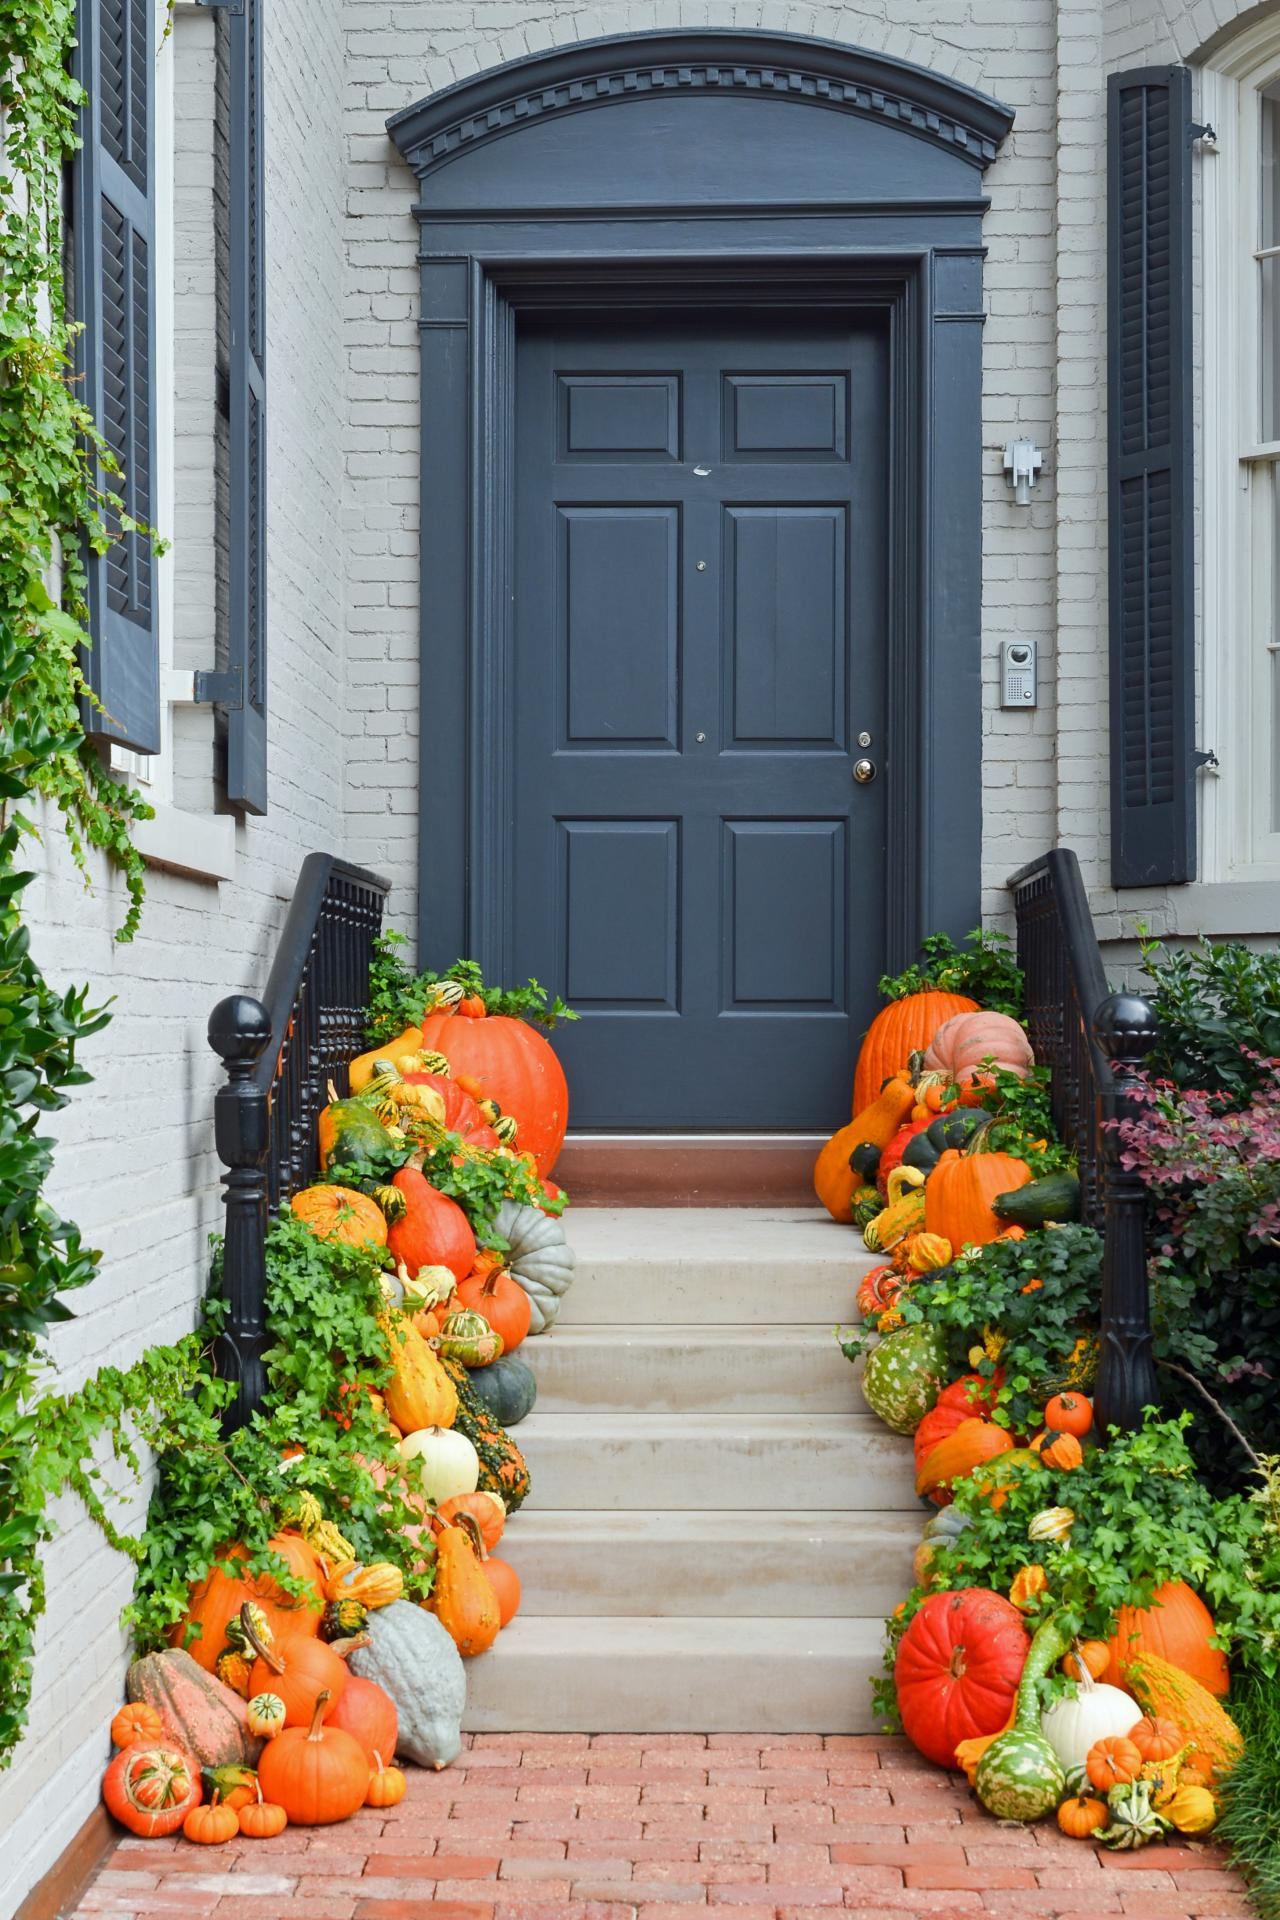 Find More Fall Decorating Ideas